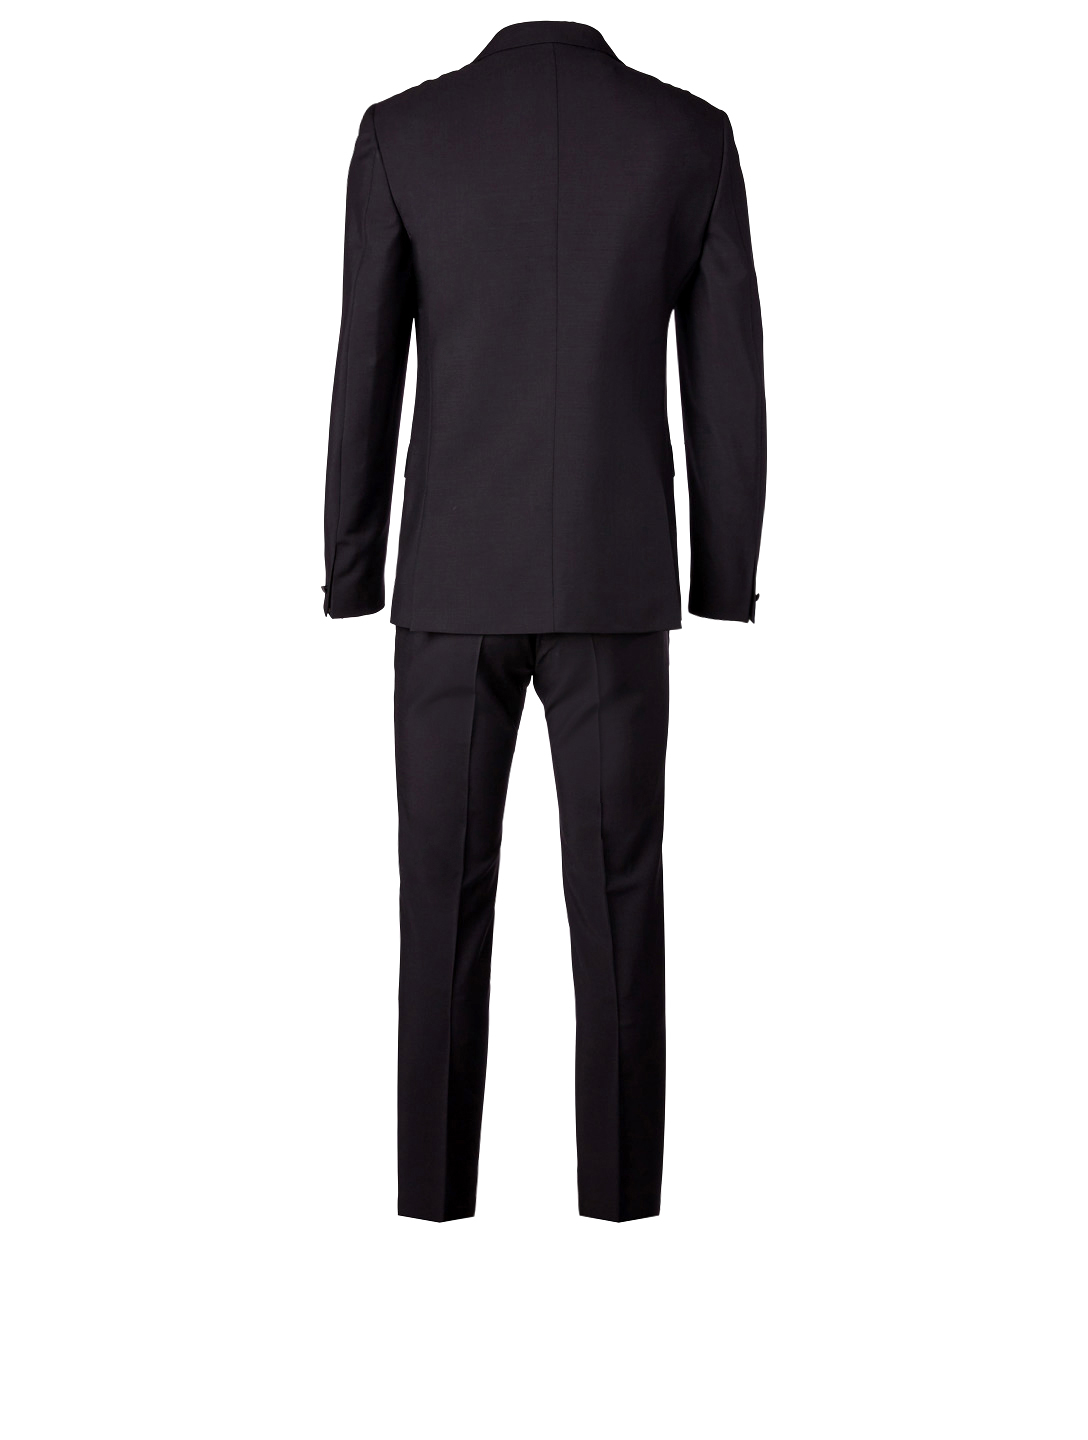 GIVENCHY Wool And Mohair Slim Fit Suit Men's Black